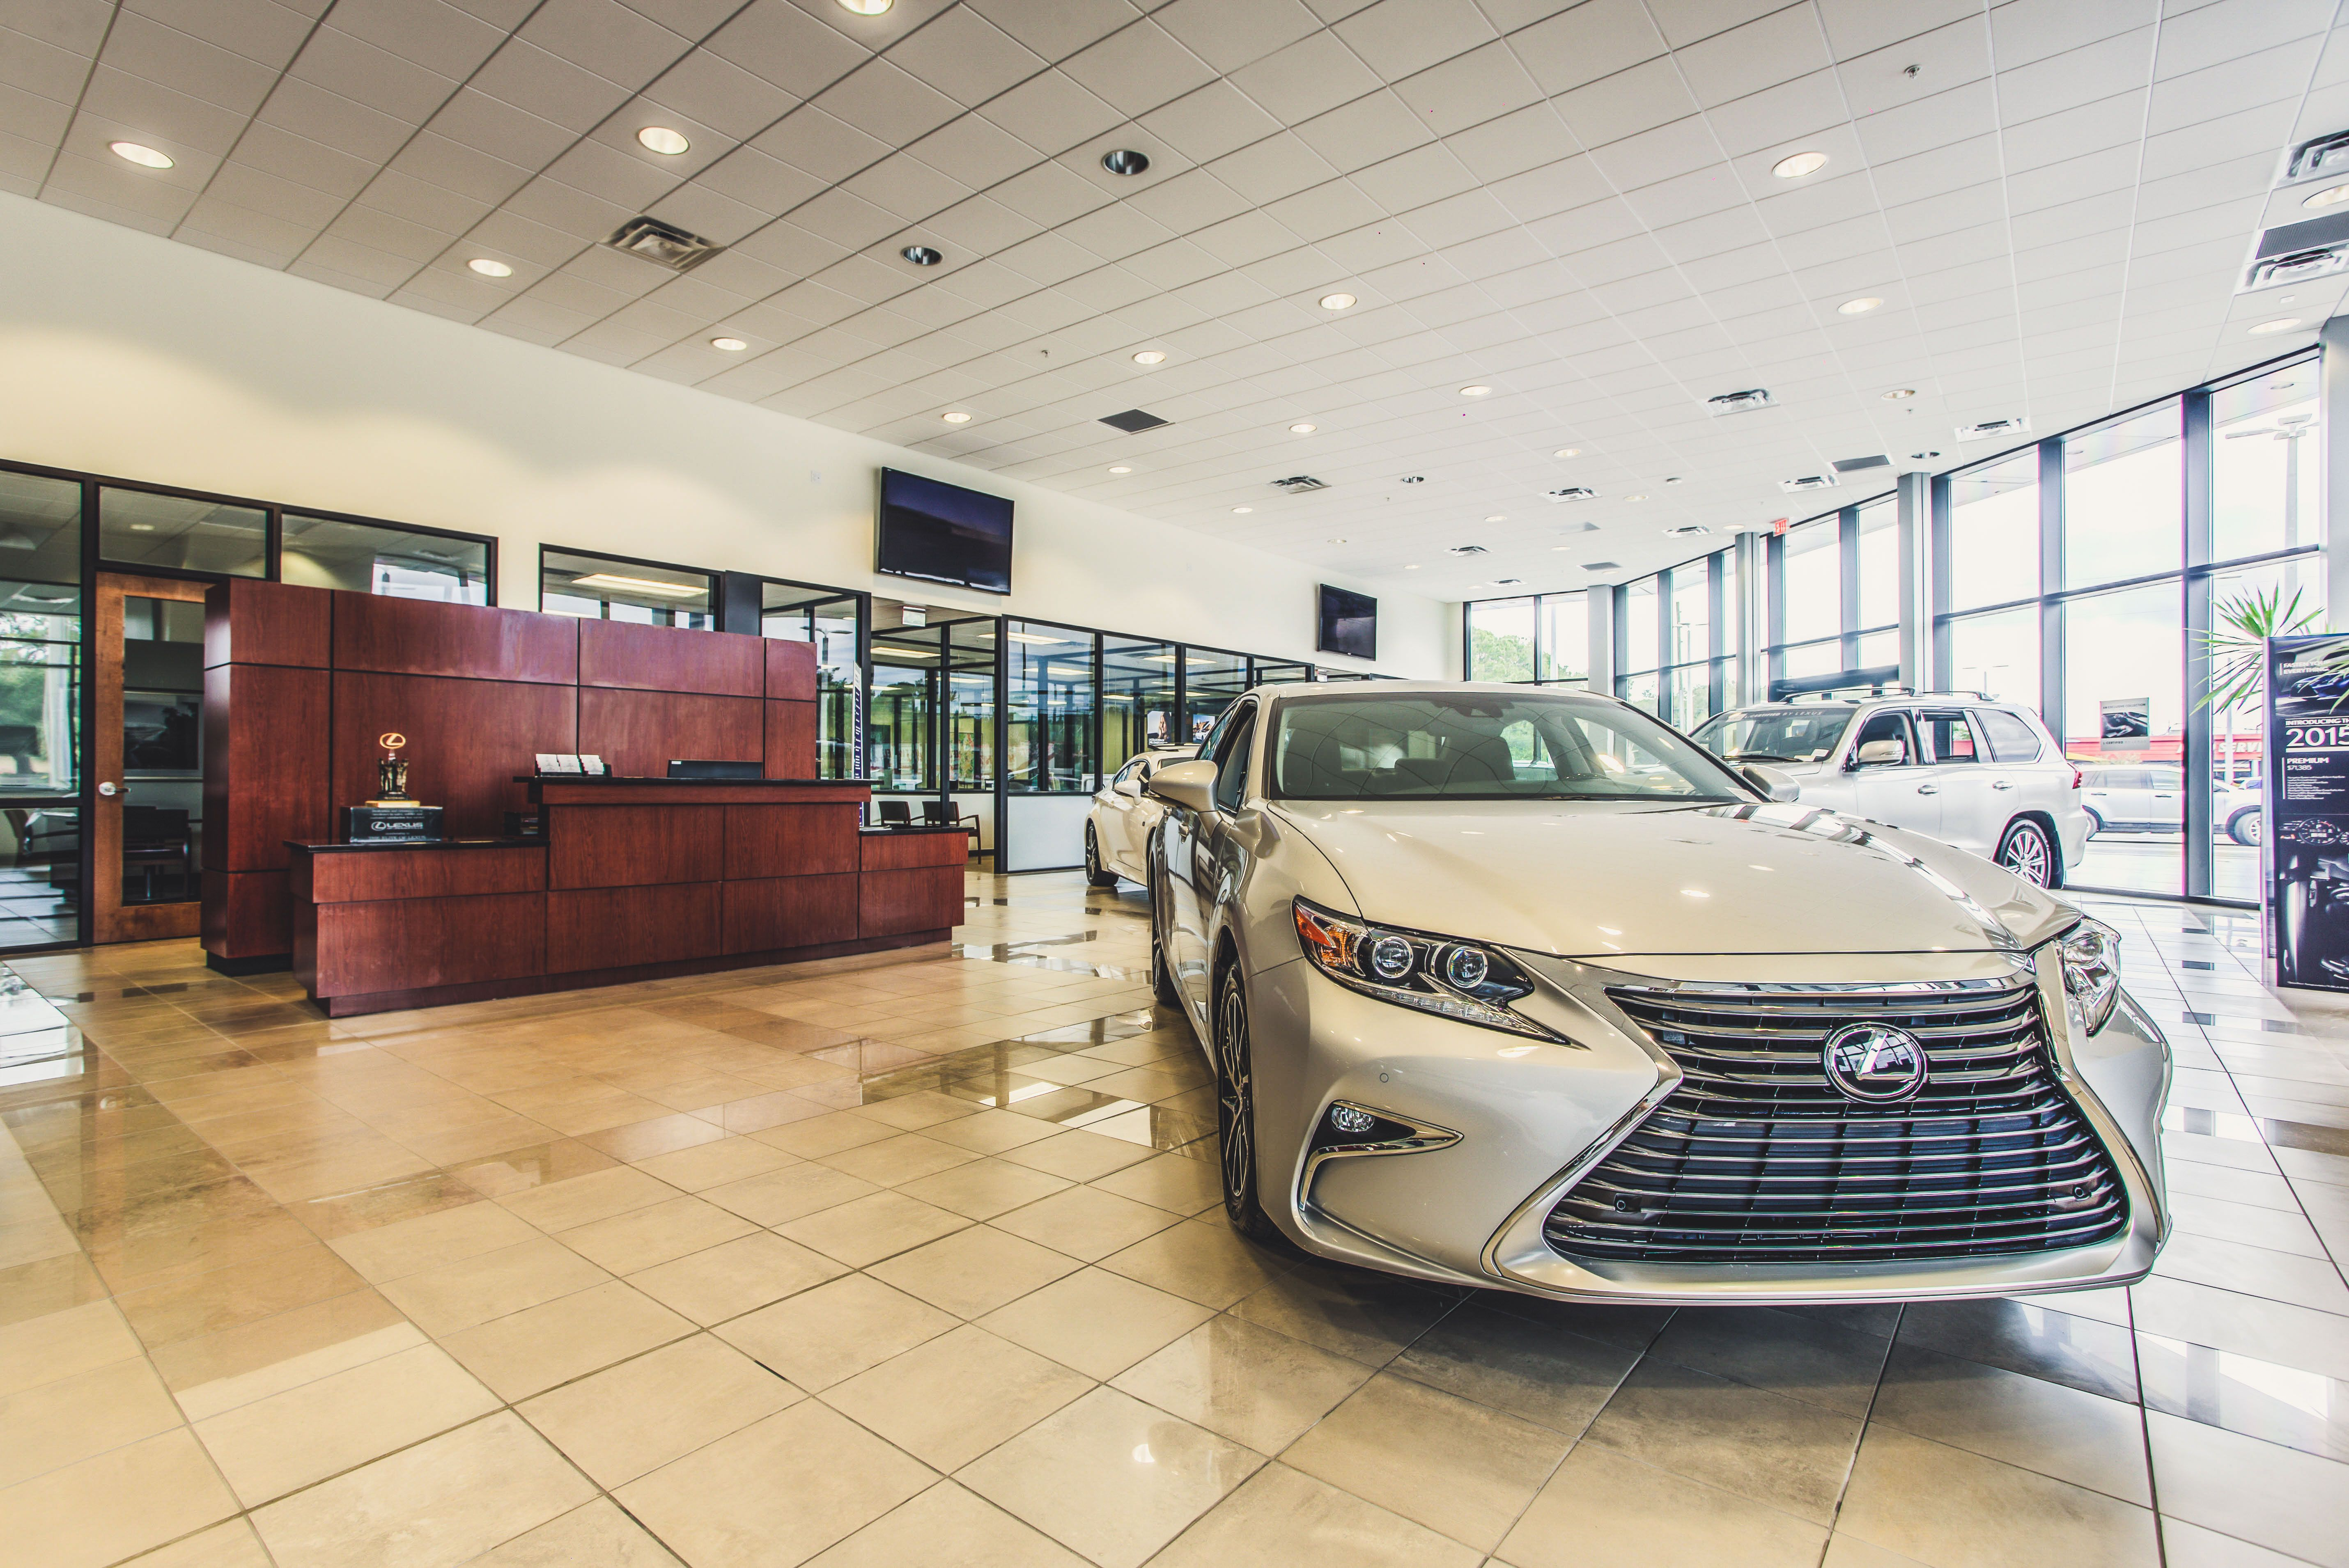 Lexus Jacksonville Fl >> Our Mission Is To Make Every Customer A Customer For Life By